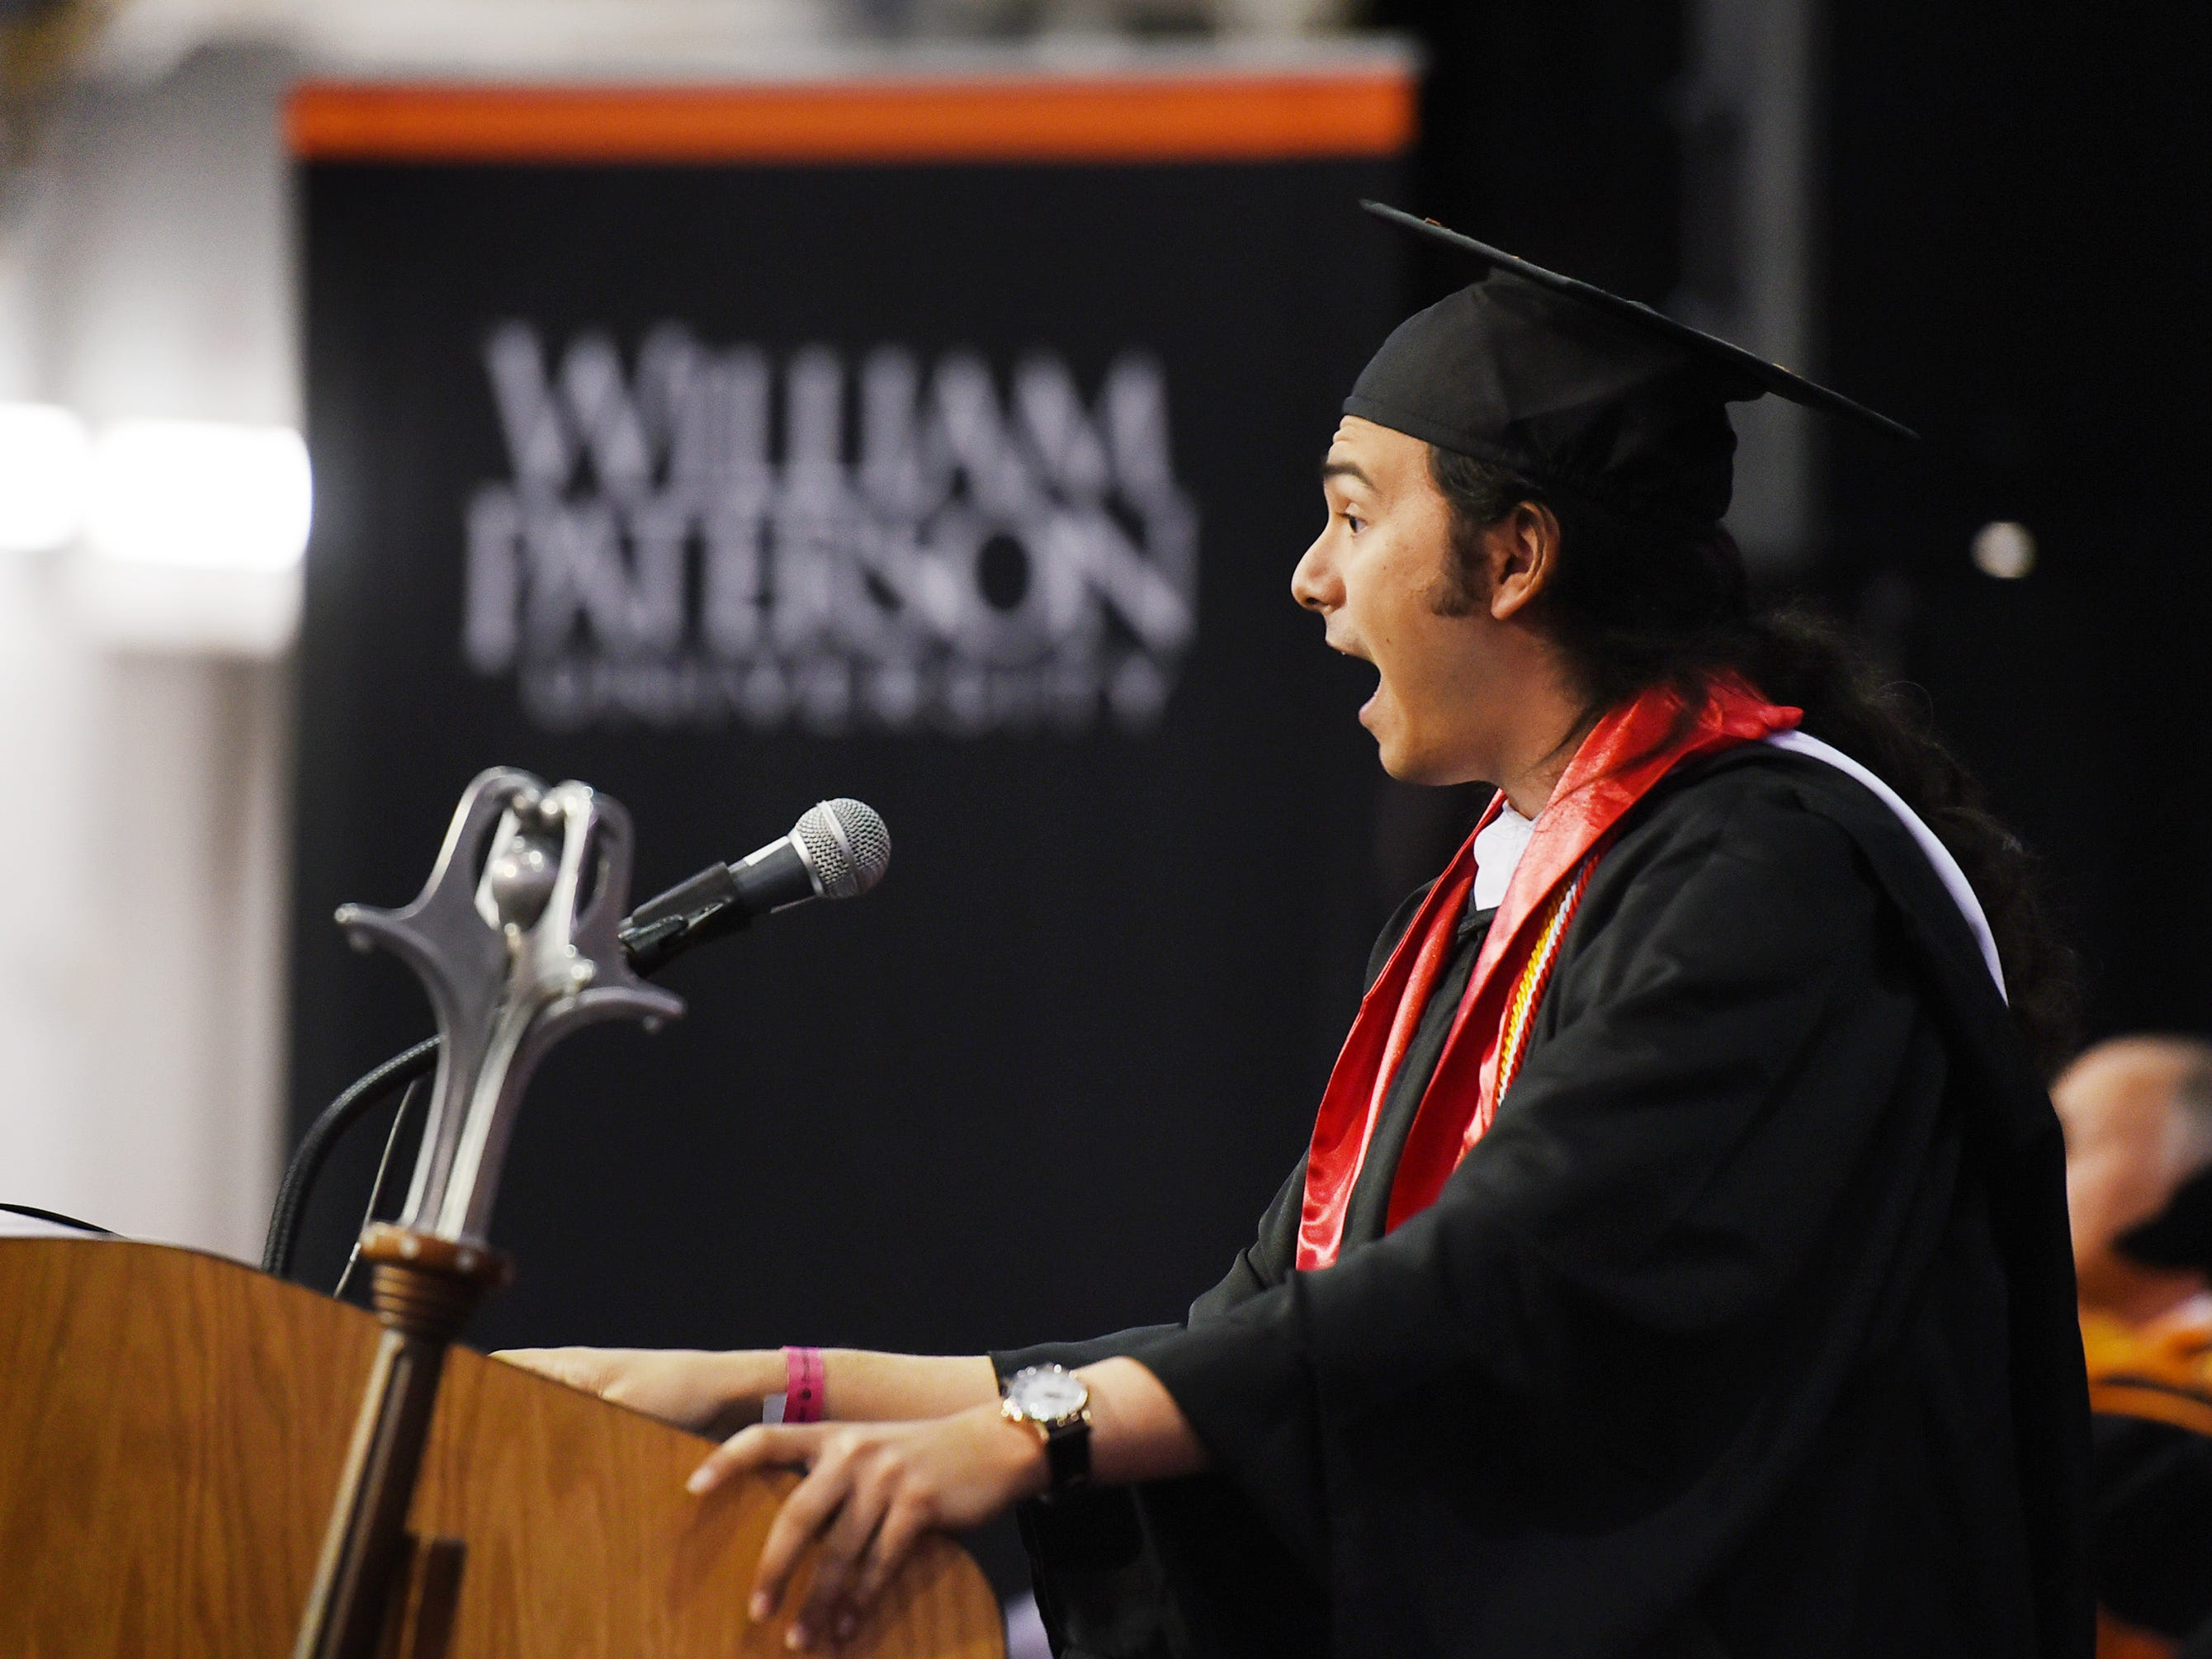 Kevin McKiernan, Bachelor of Arts candidate, Asian Studies and History, gives a Valedictory Address during the William Paterson University 2019 Commencement at the Prudential Center in Newark on 05/15/19.